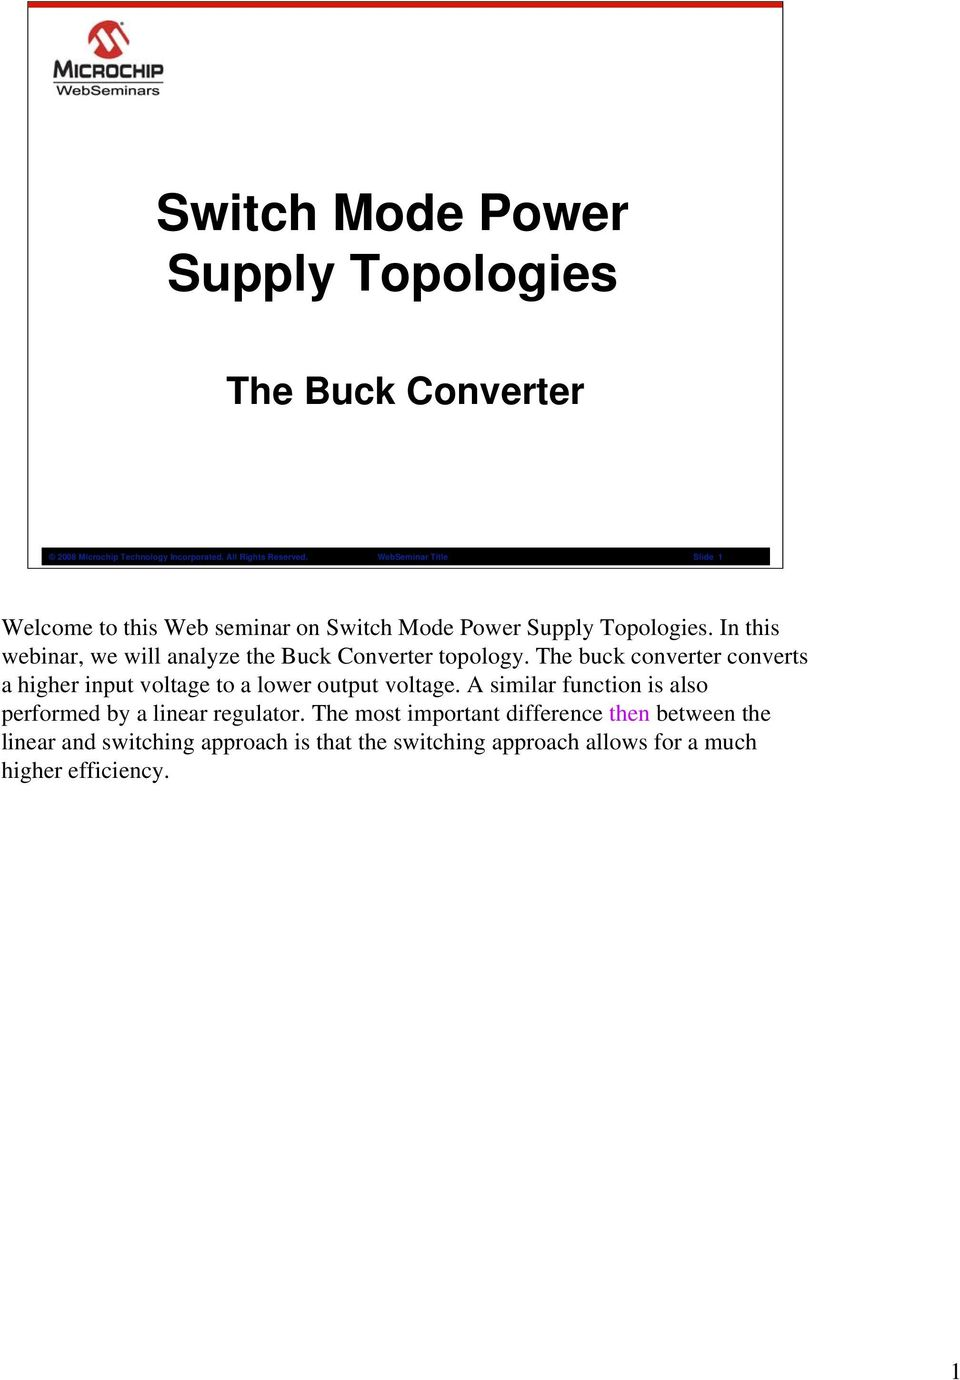 In this webinar, we will analyze the Buck Converter topology. The buck converter converts a higher input voltage to a lower output voltage.